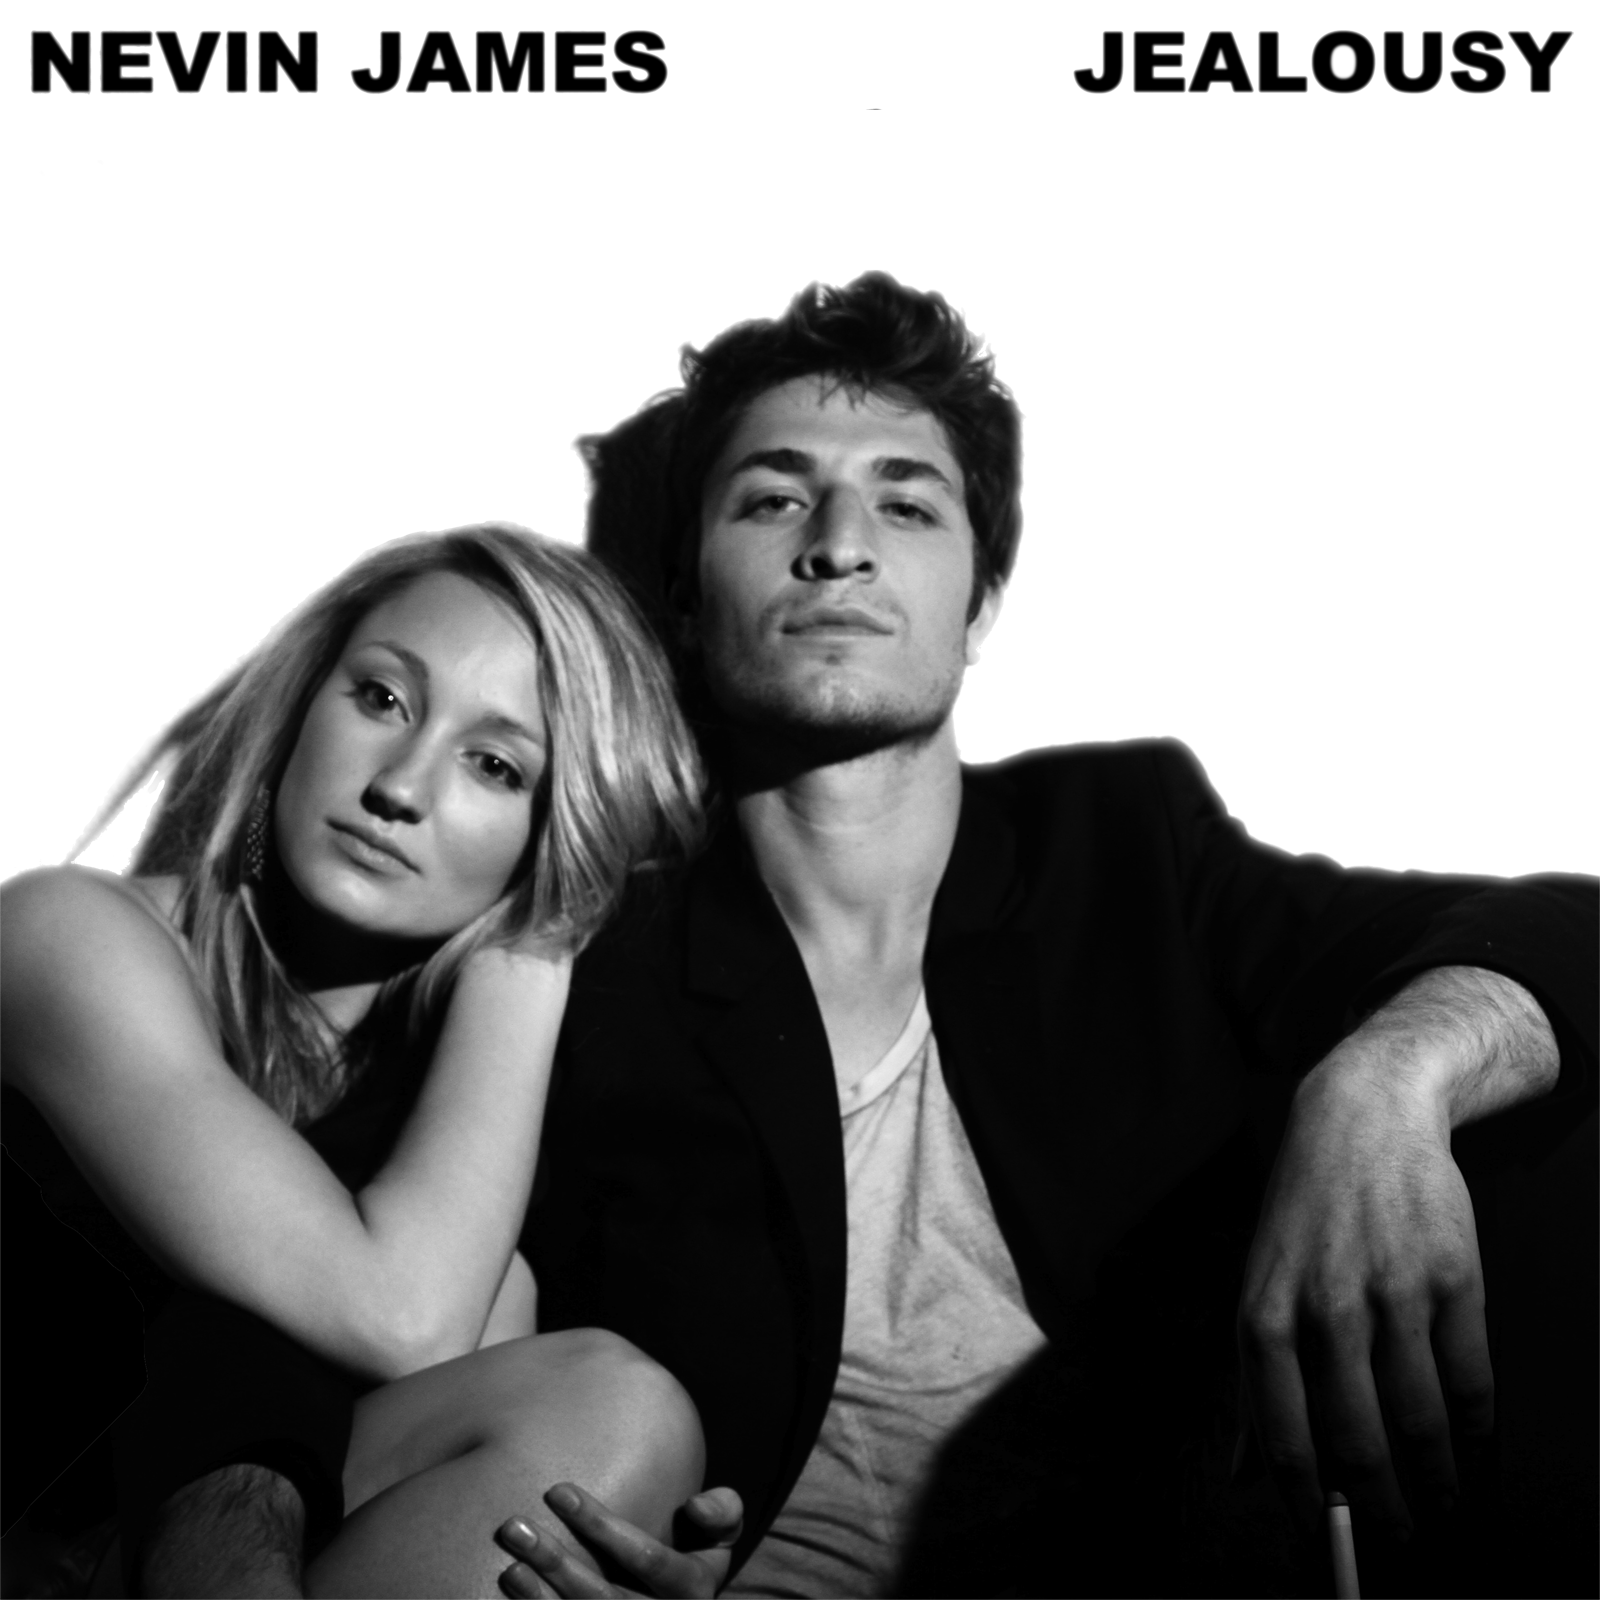 Nevin James - Jealousy Cover_Square.png